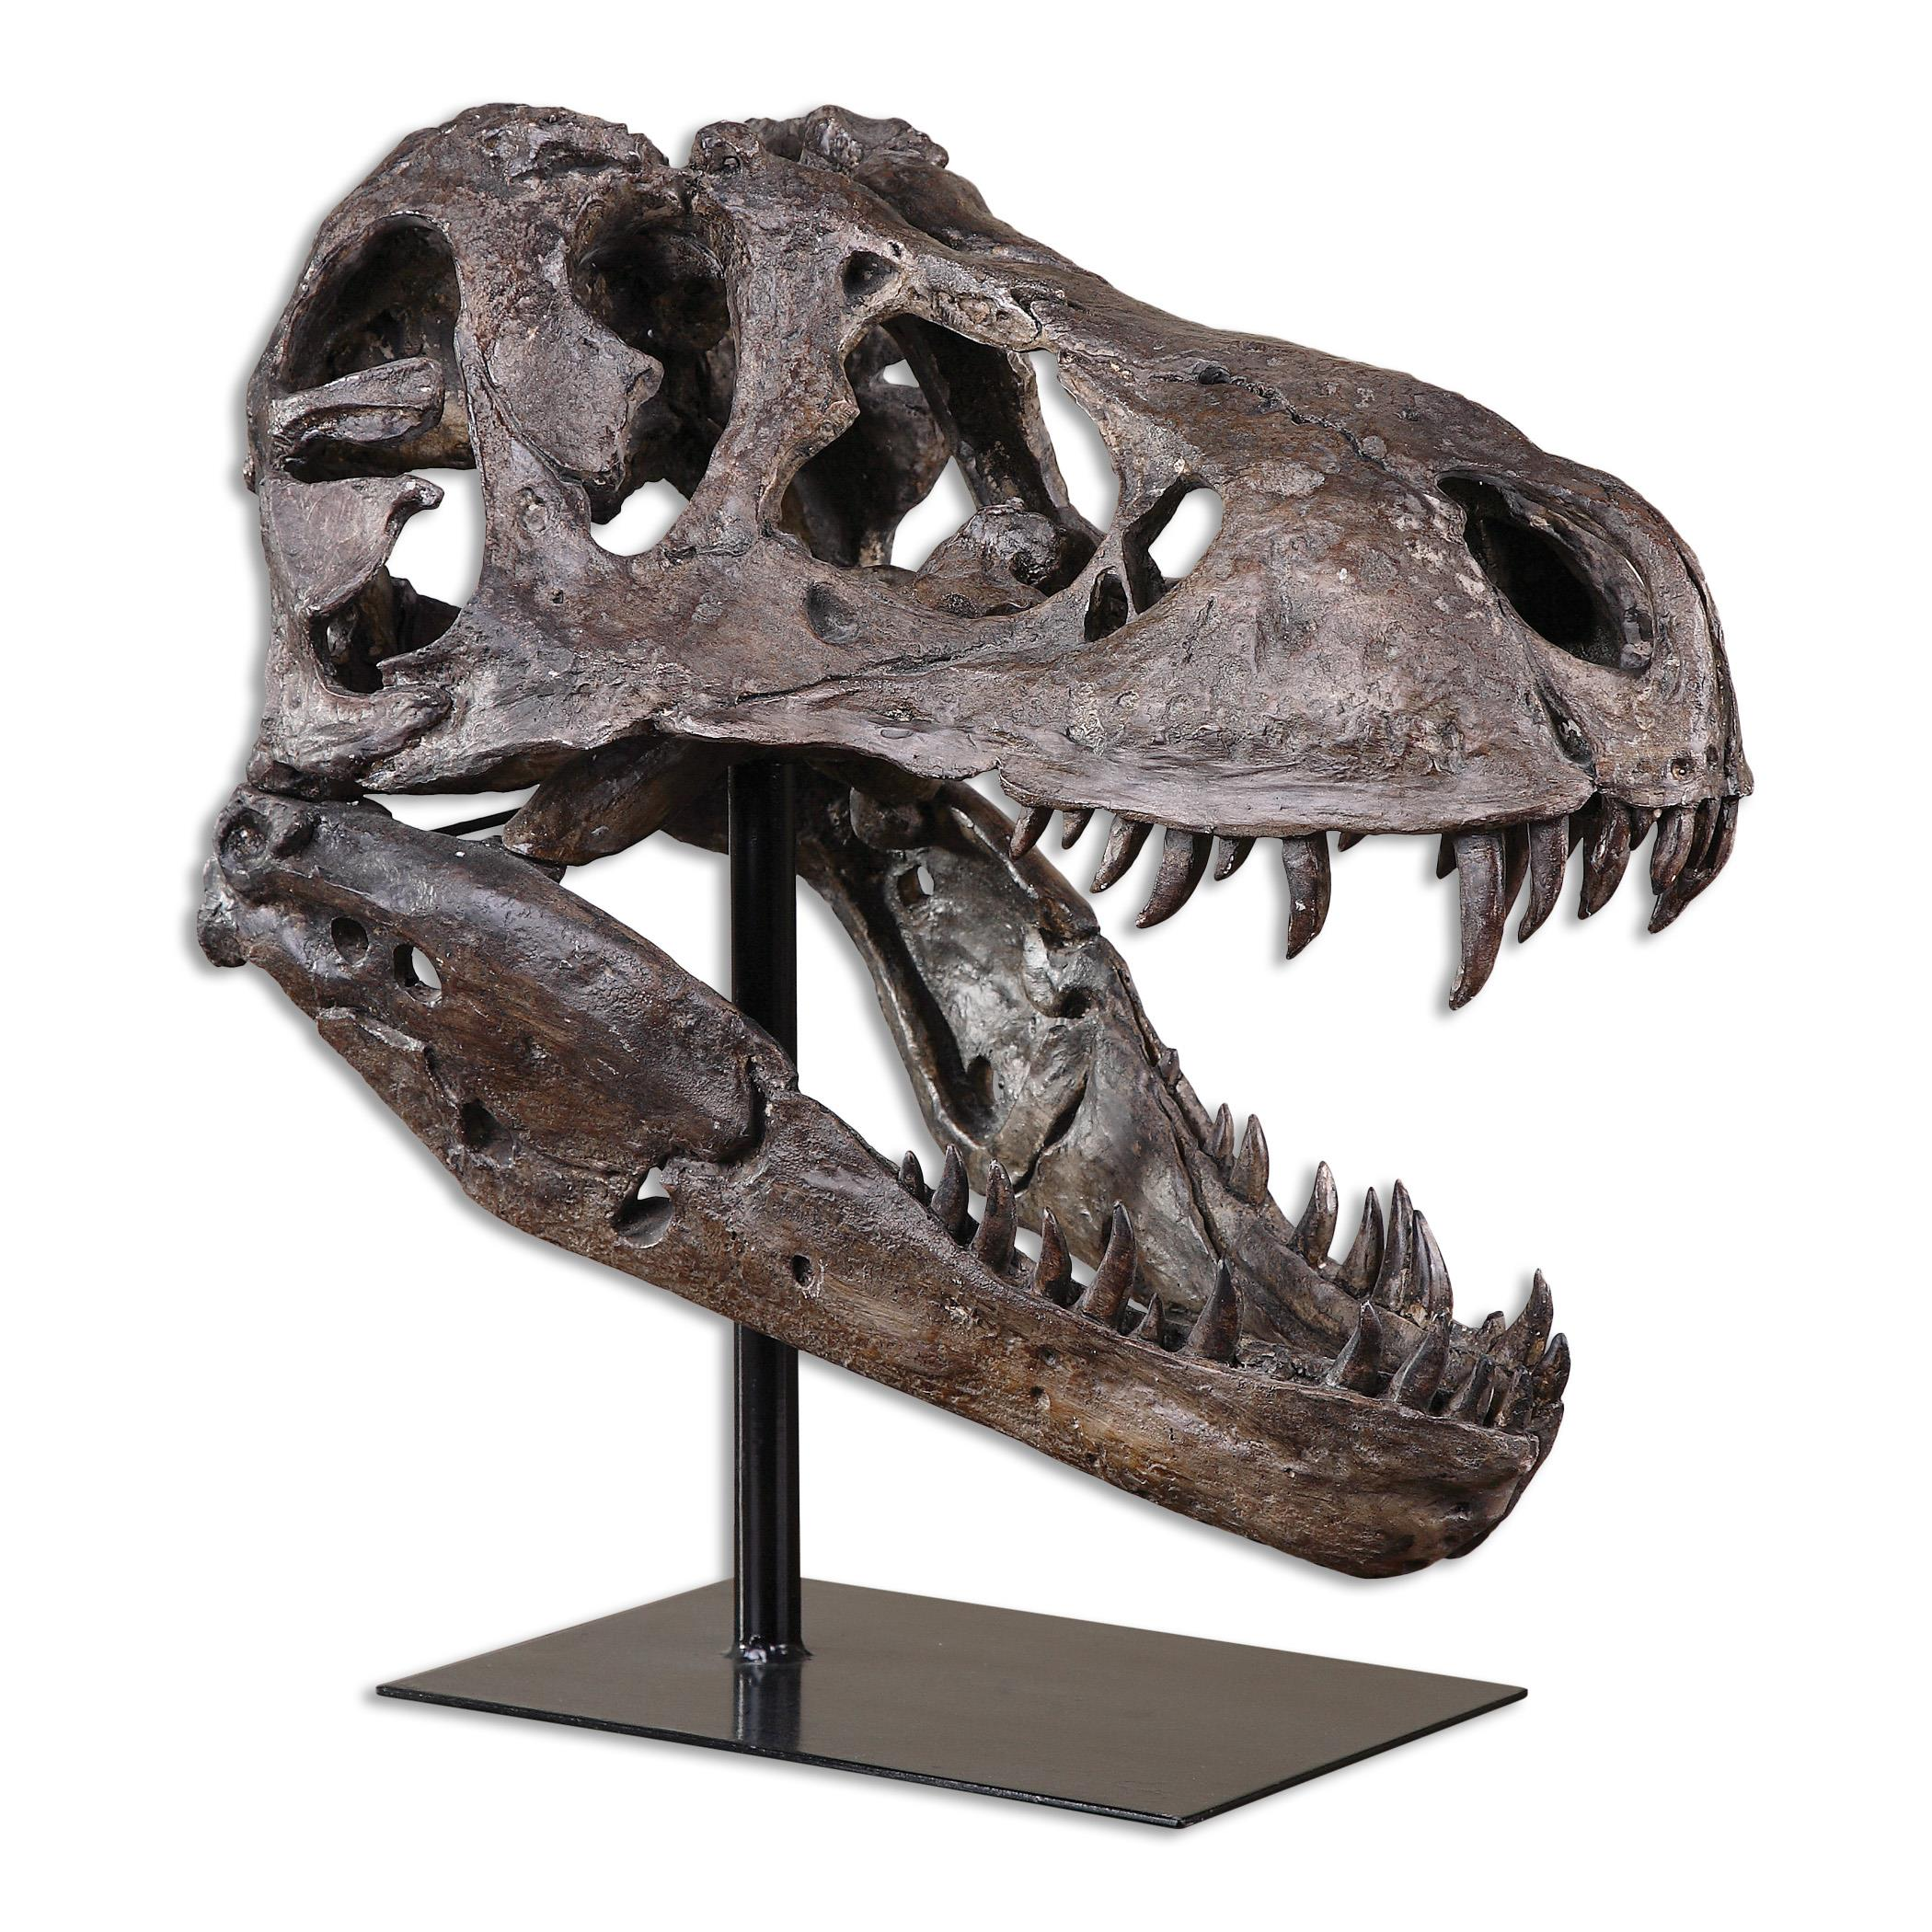 Accessories - Statues and Figurines Tyrannosaurus Sculpture by Uttermost at Mueller Furniture